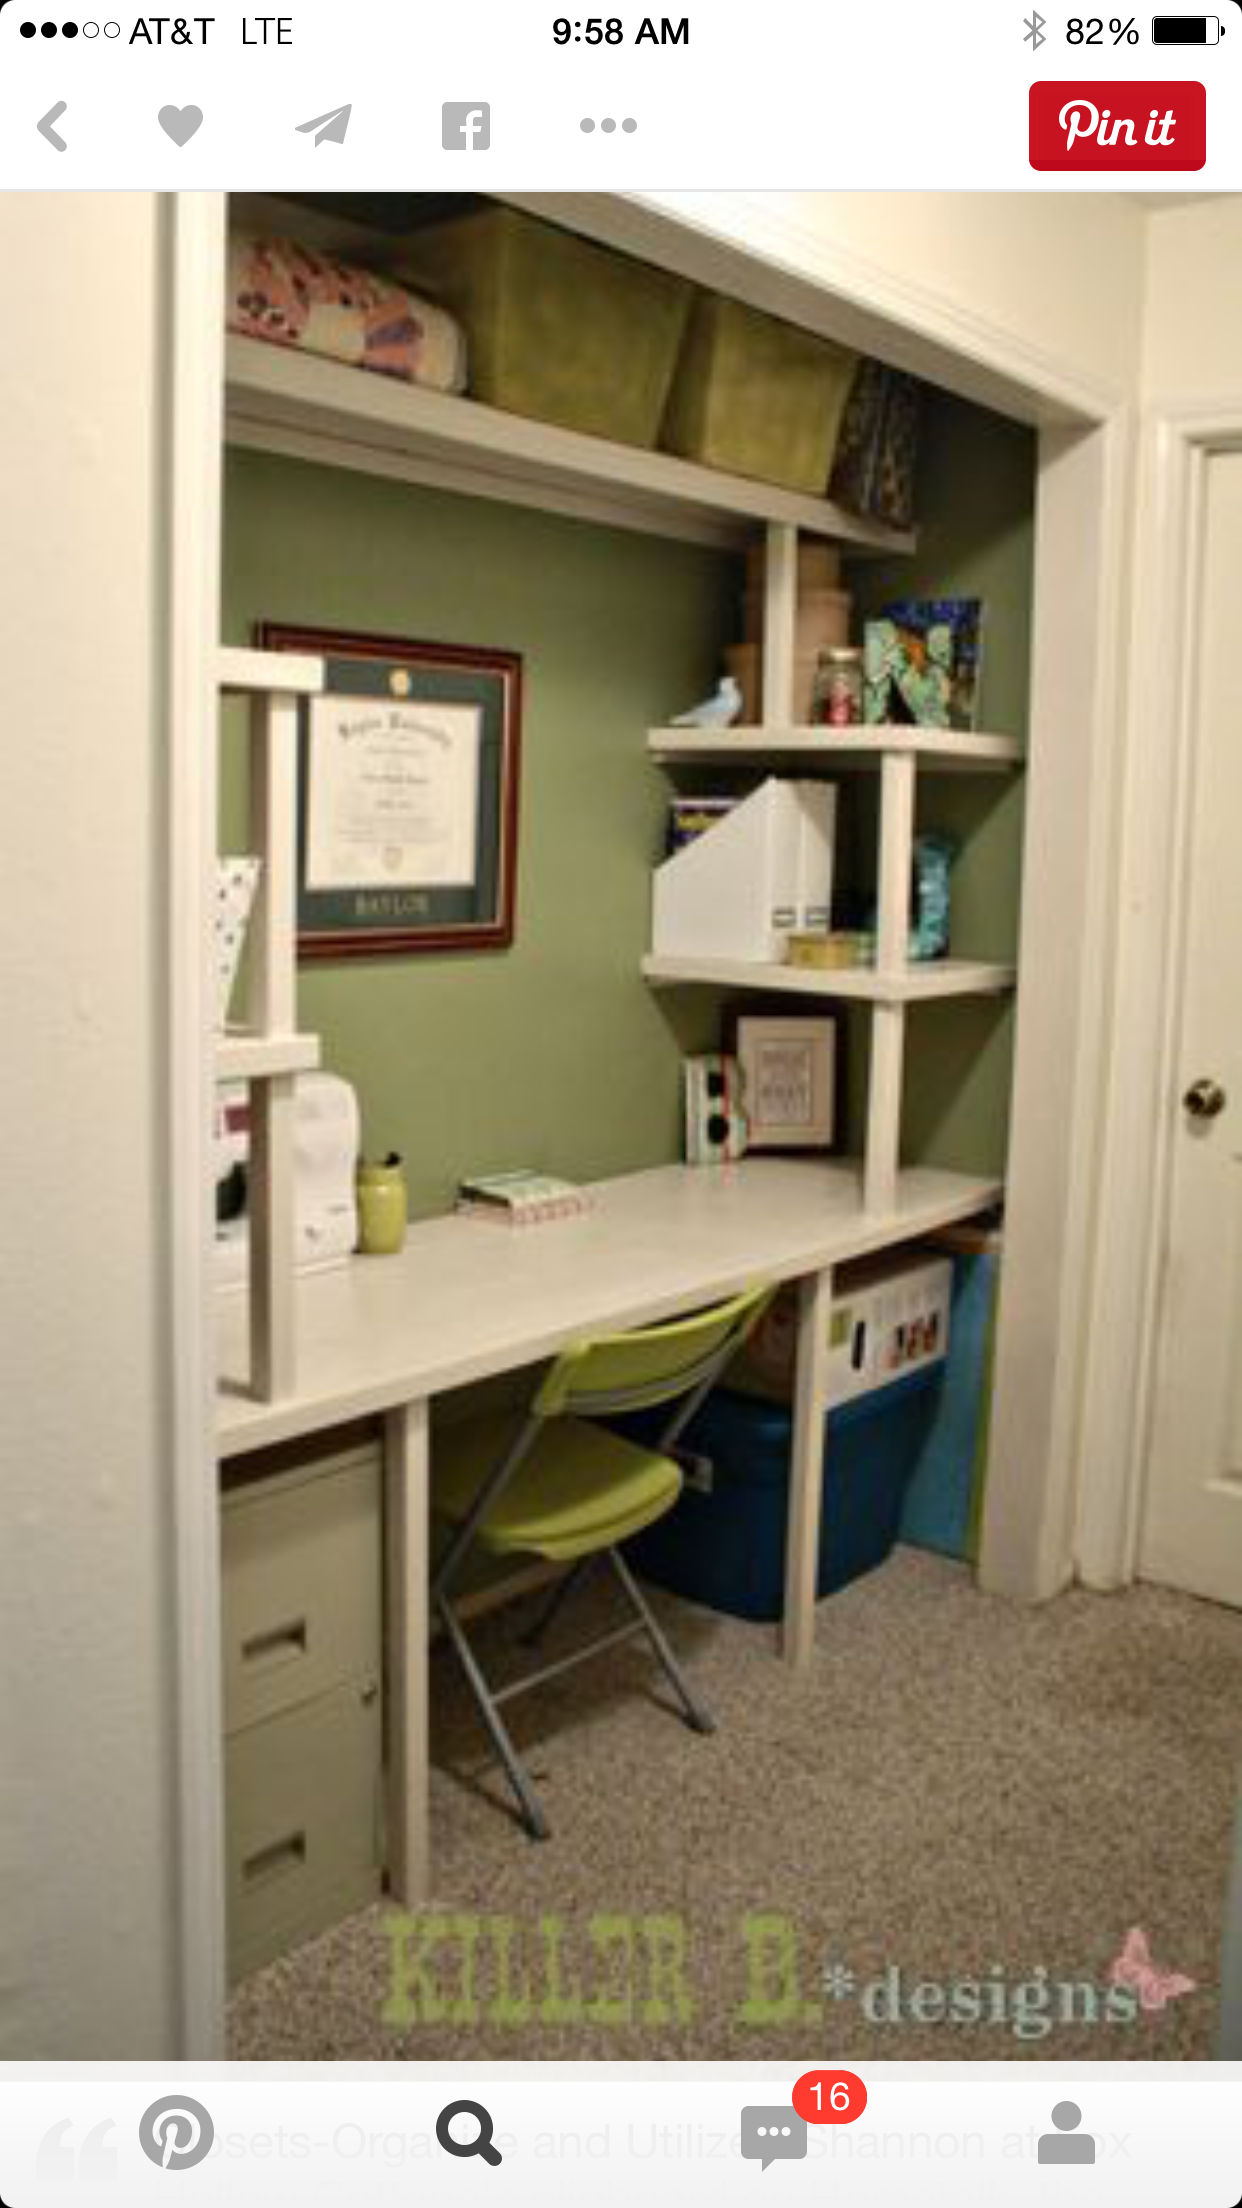 space closet offices pinterest home diy baby turned decosmallspaces and on an best design office makeover images into